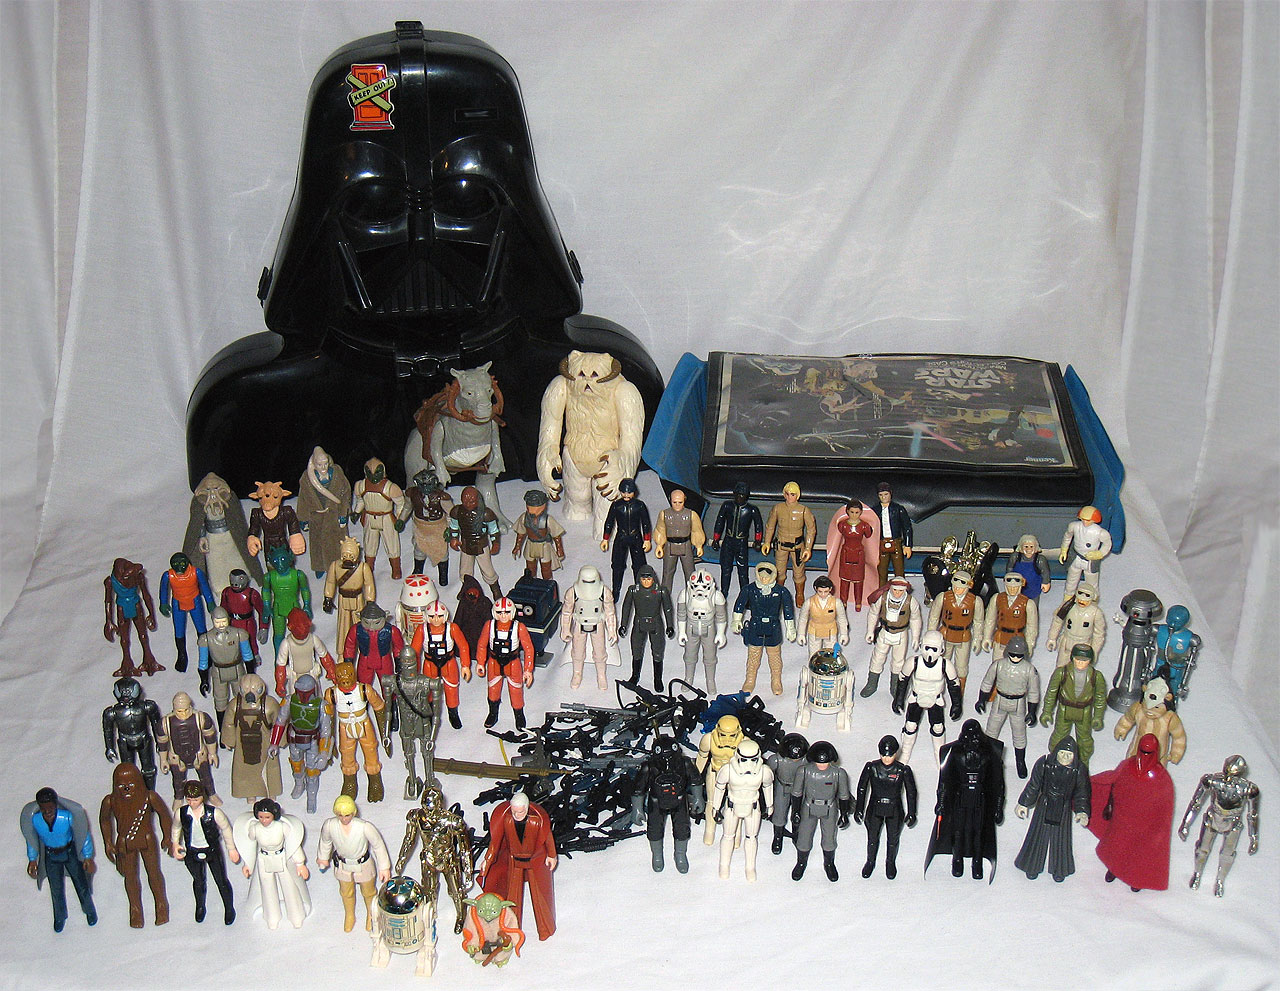 Star Wars action figures from Kenner - Shag's classic collection